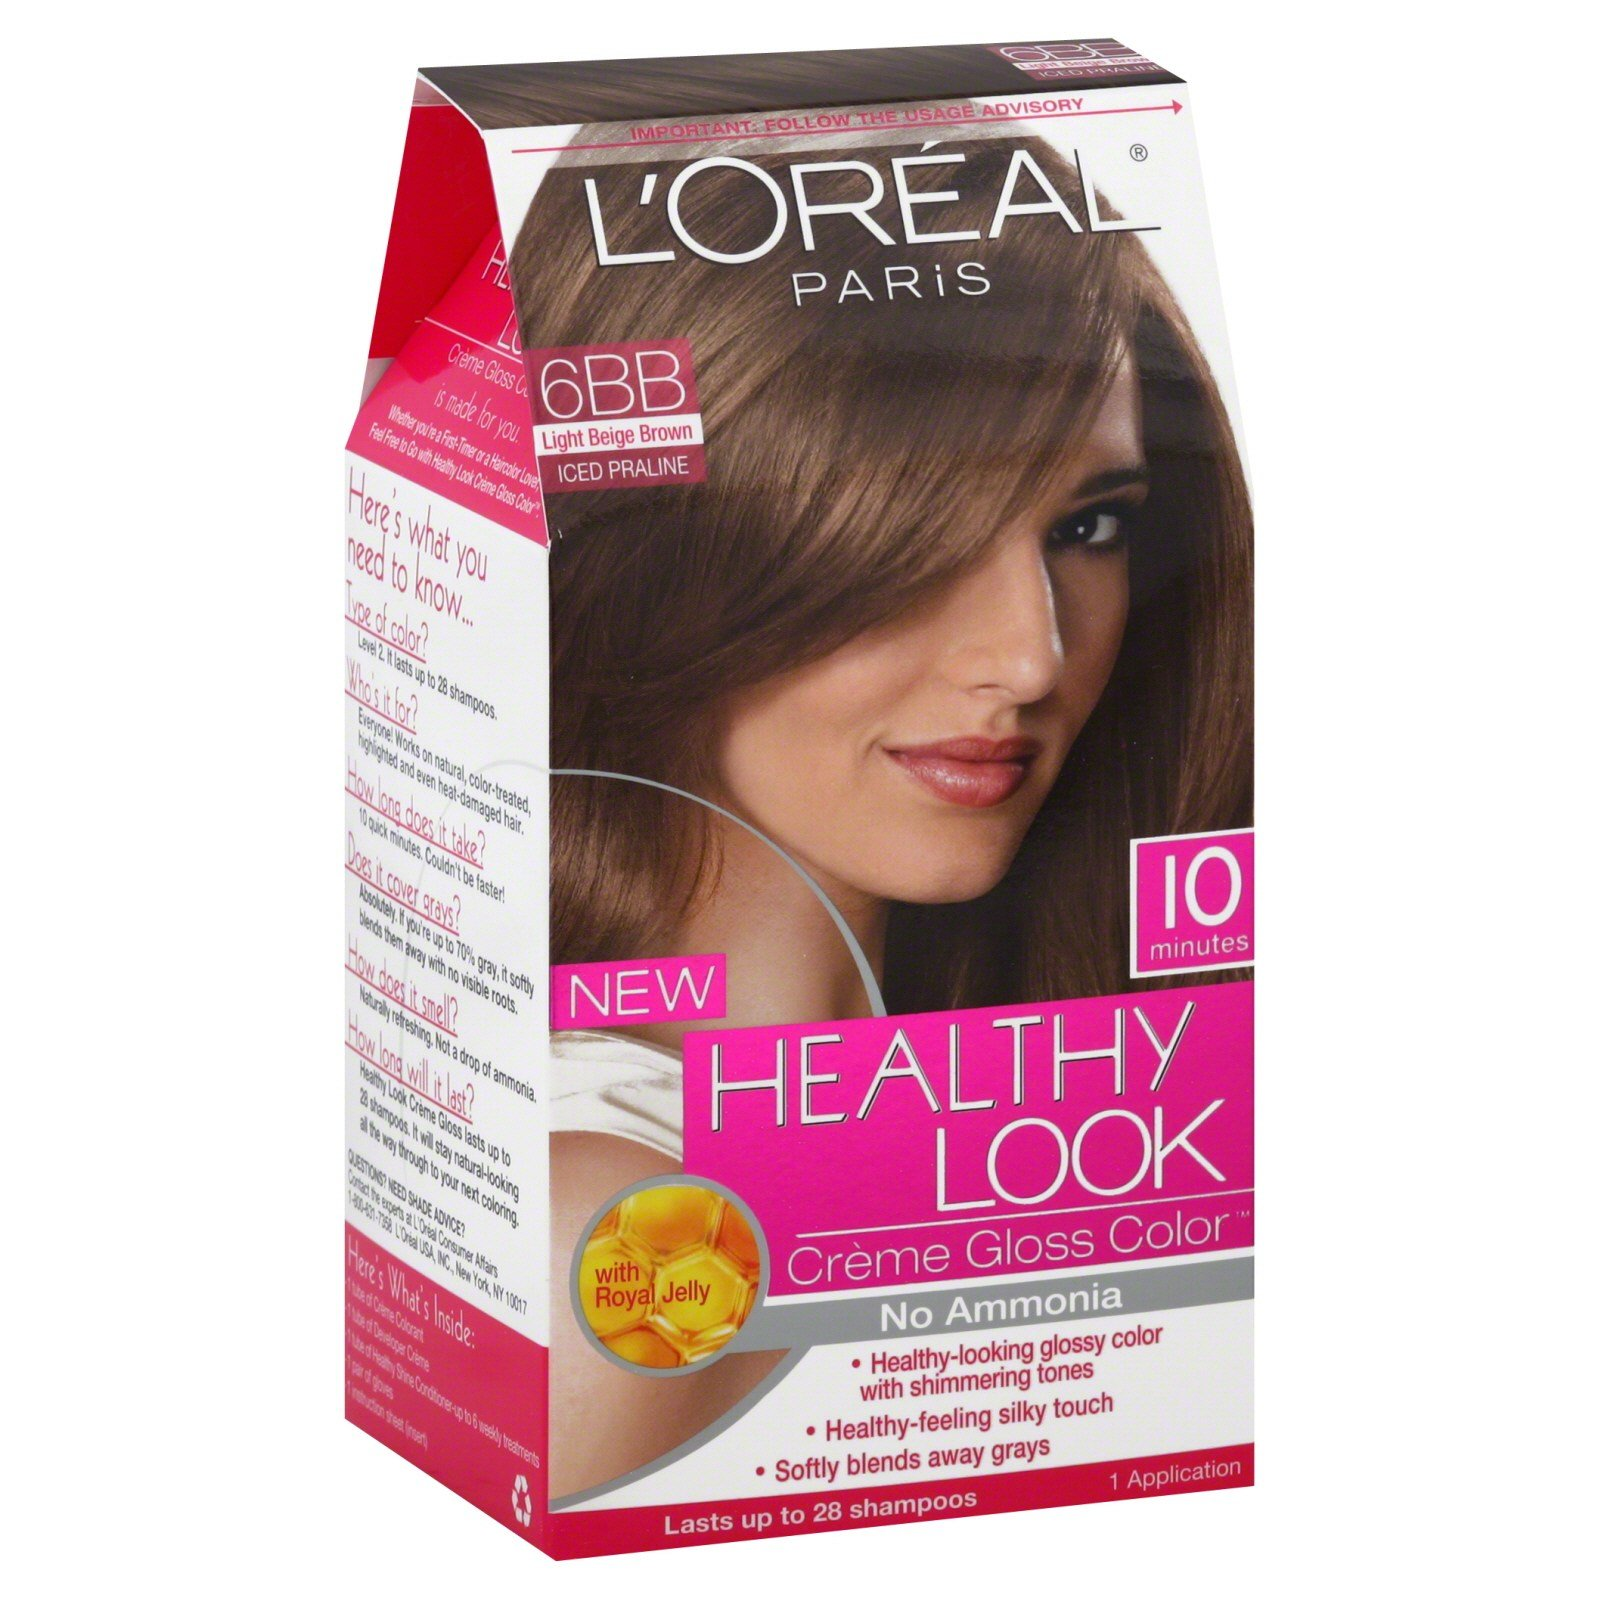 The Best L Oreal Healthy Look Hair Dye Creme Gloss Color 6Bb 1 Application Beauty Hair Care Hair Pictures